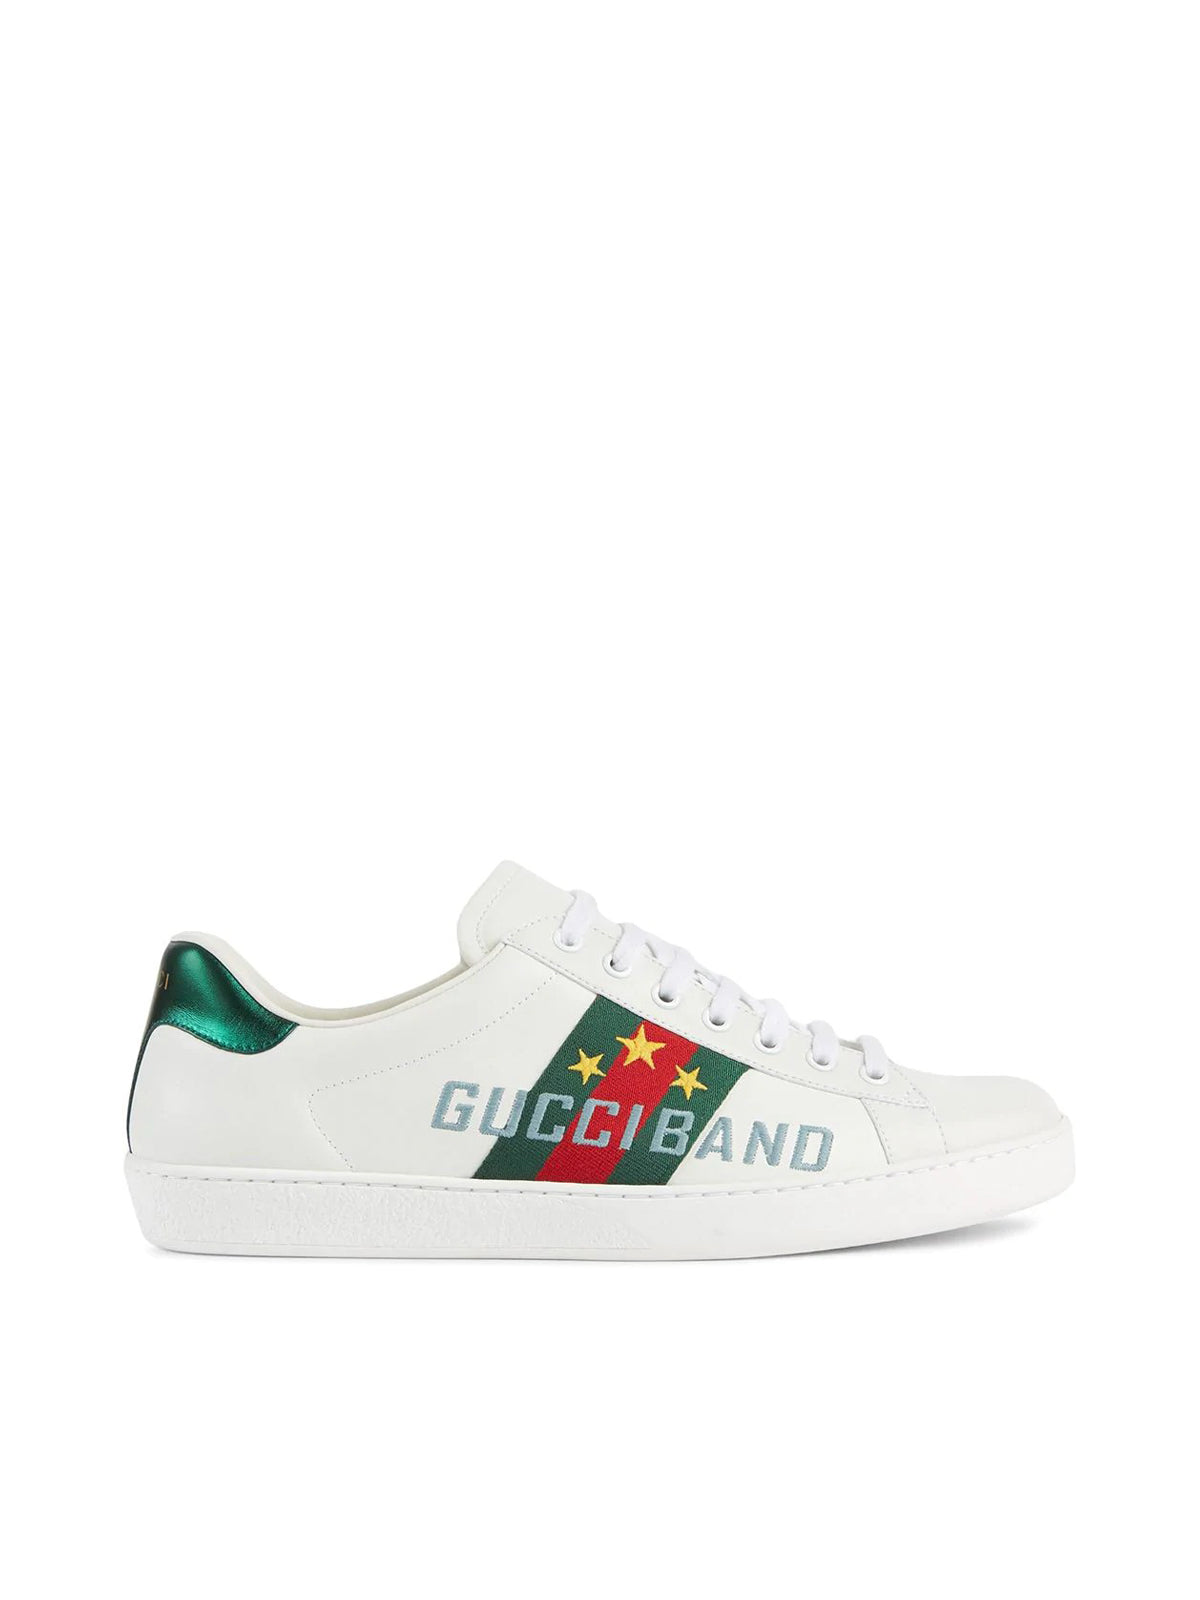 SNEAKERS GUCCI BAND ACE